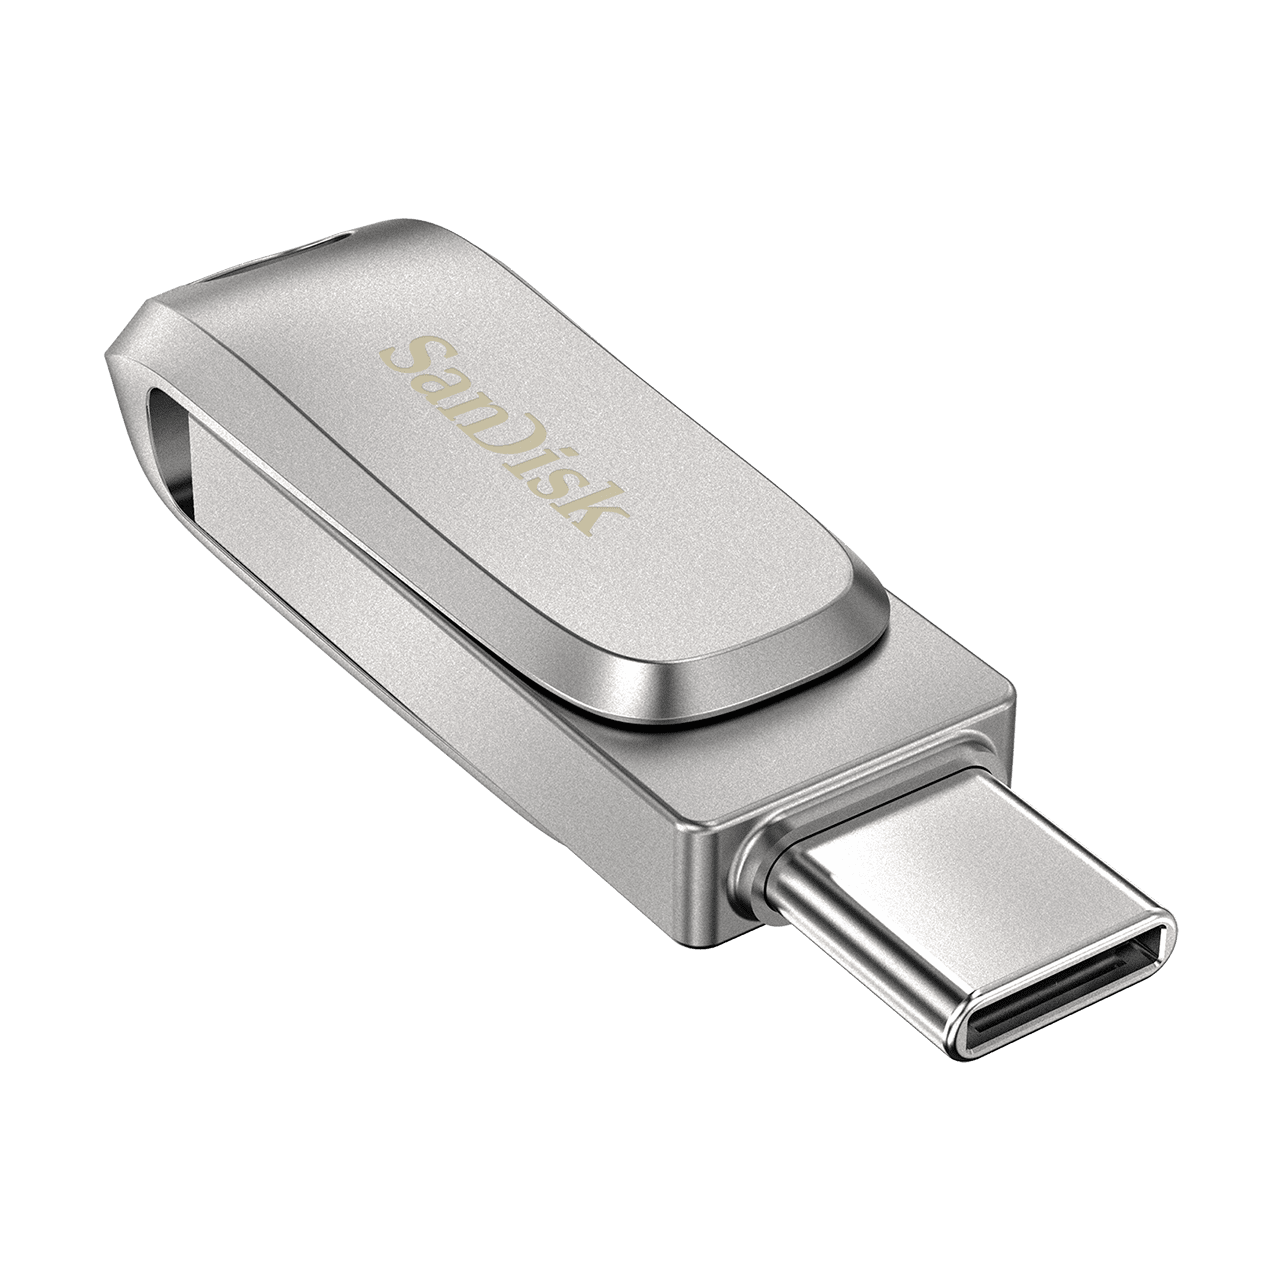 SanDisk Ultra Dual Drive Luxe USB-C 512GB